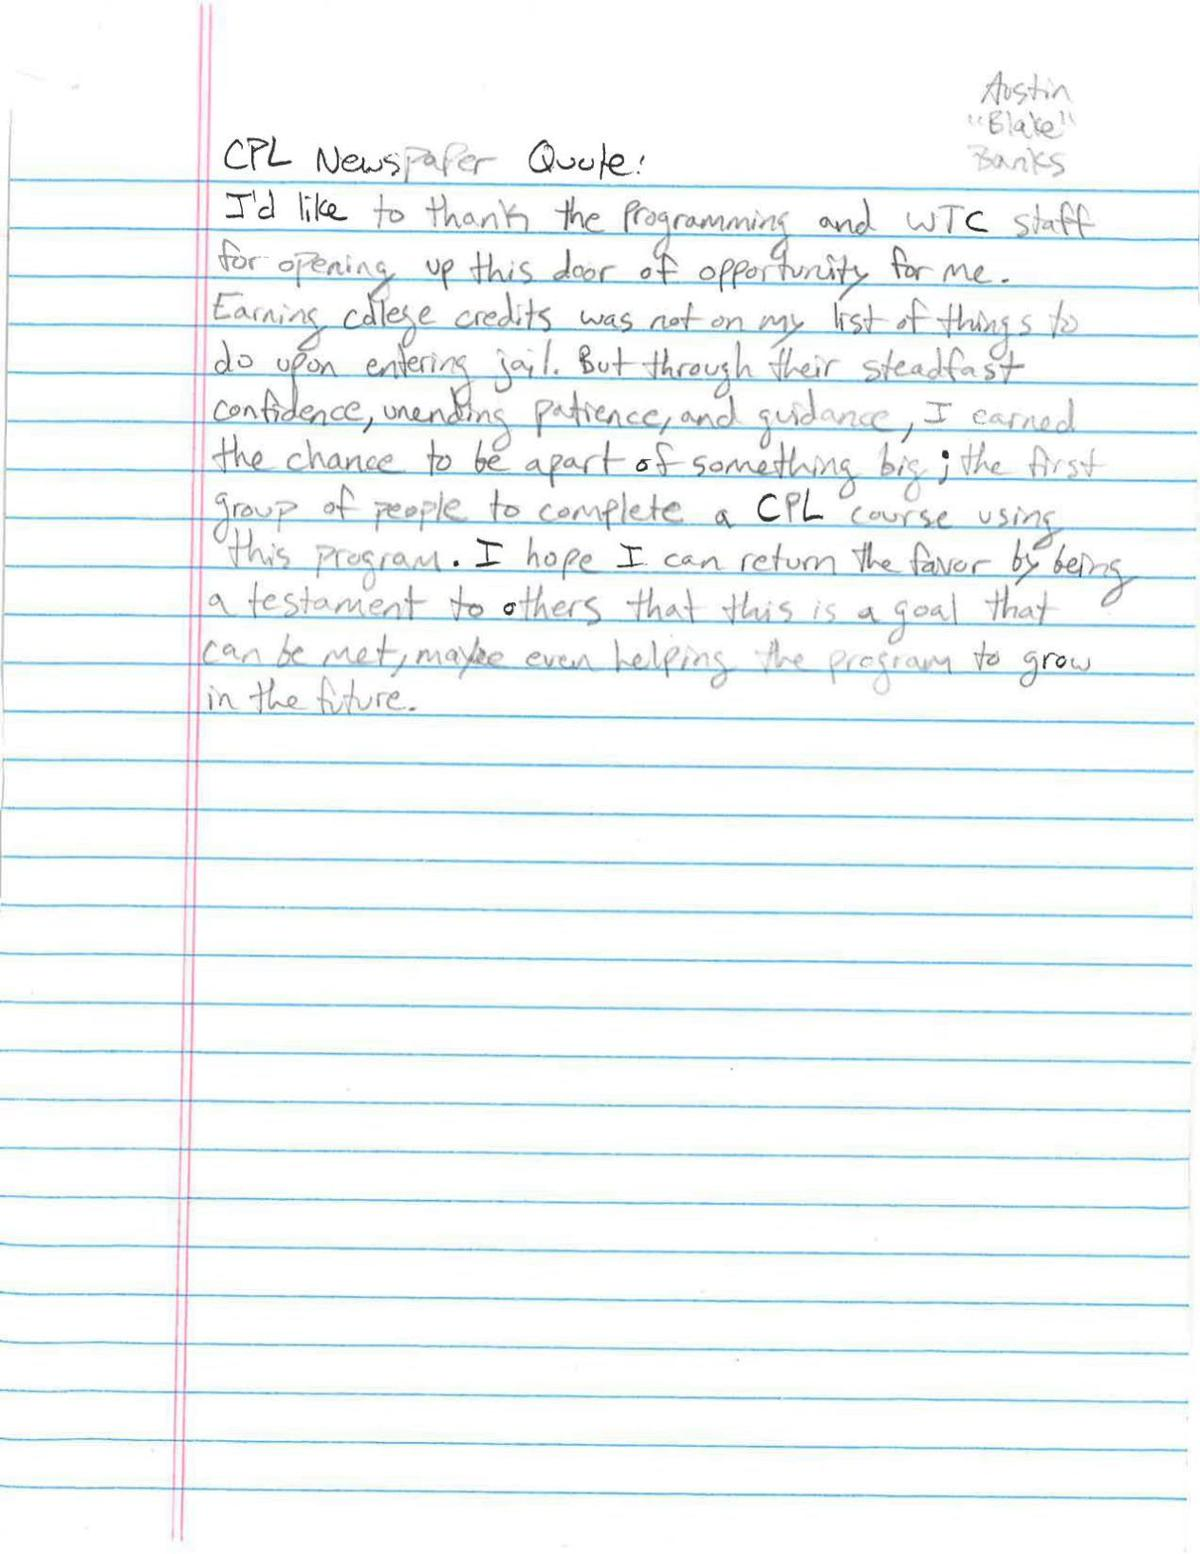 Letter from Austin Banks, Project Proven student